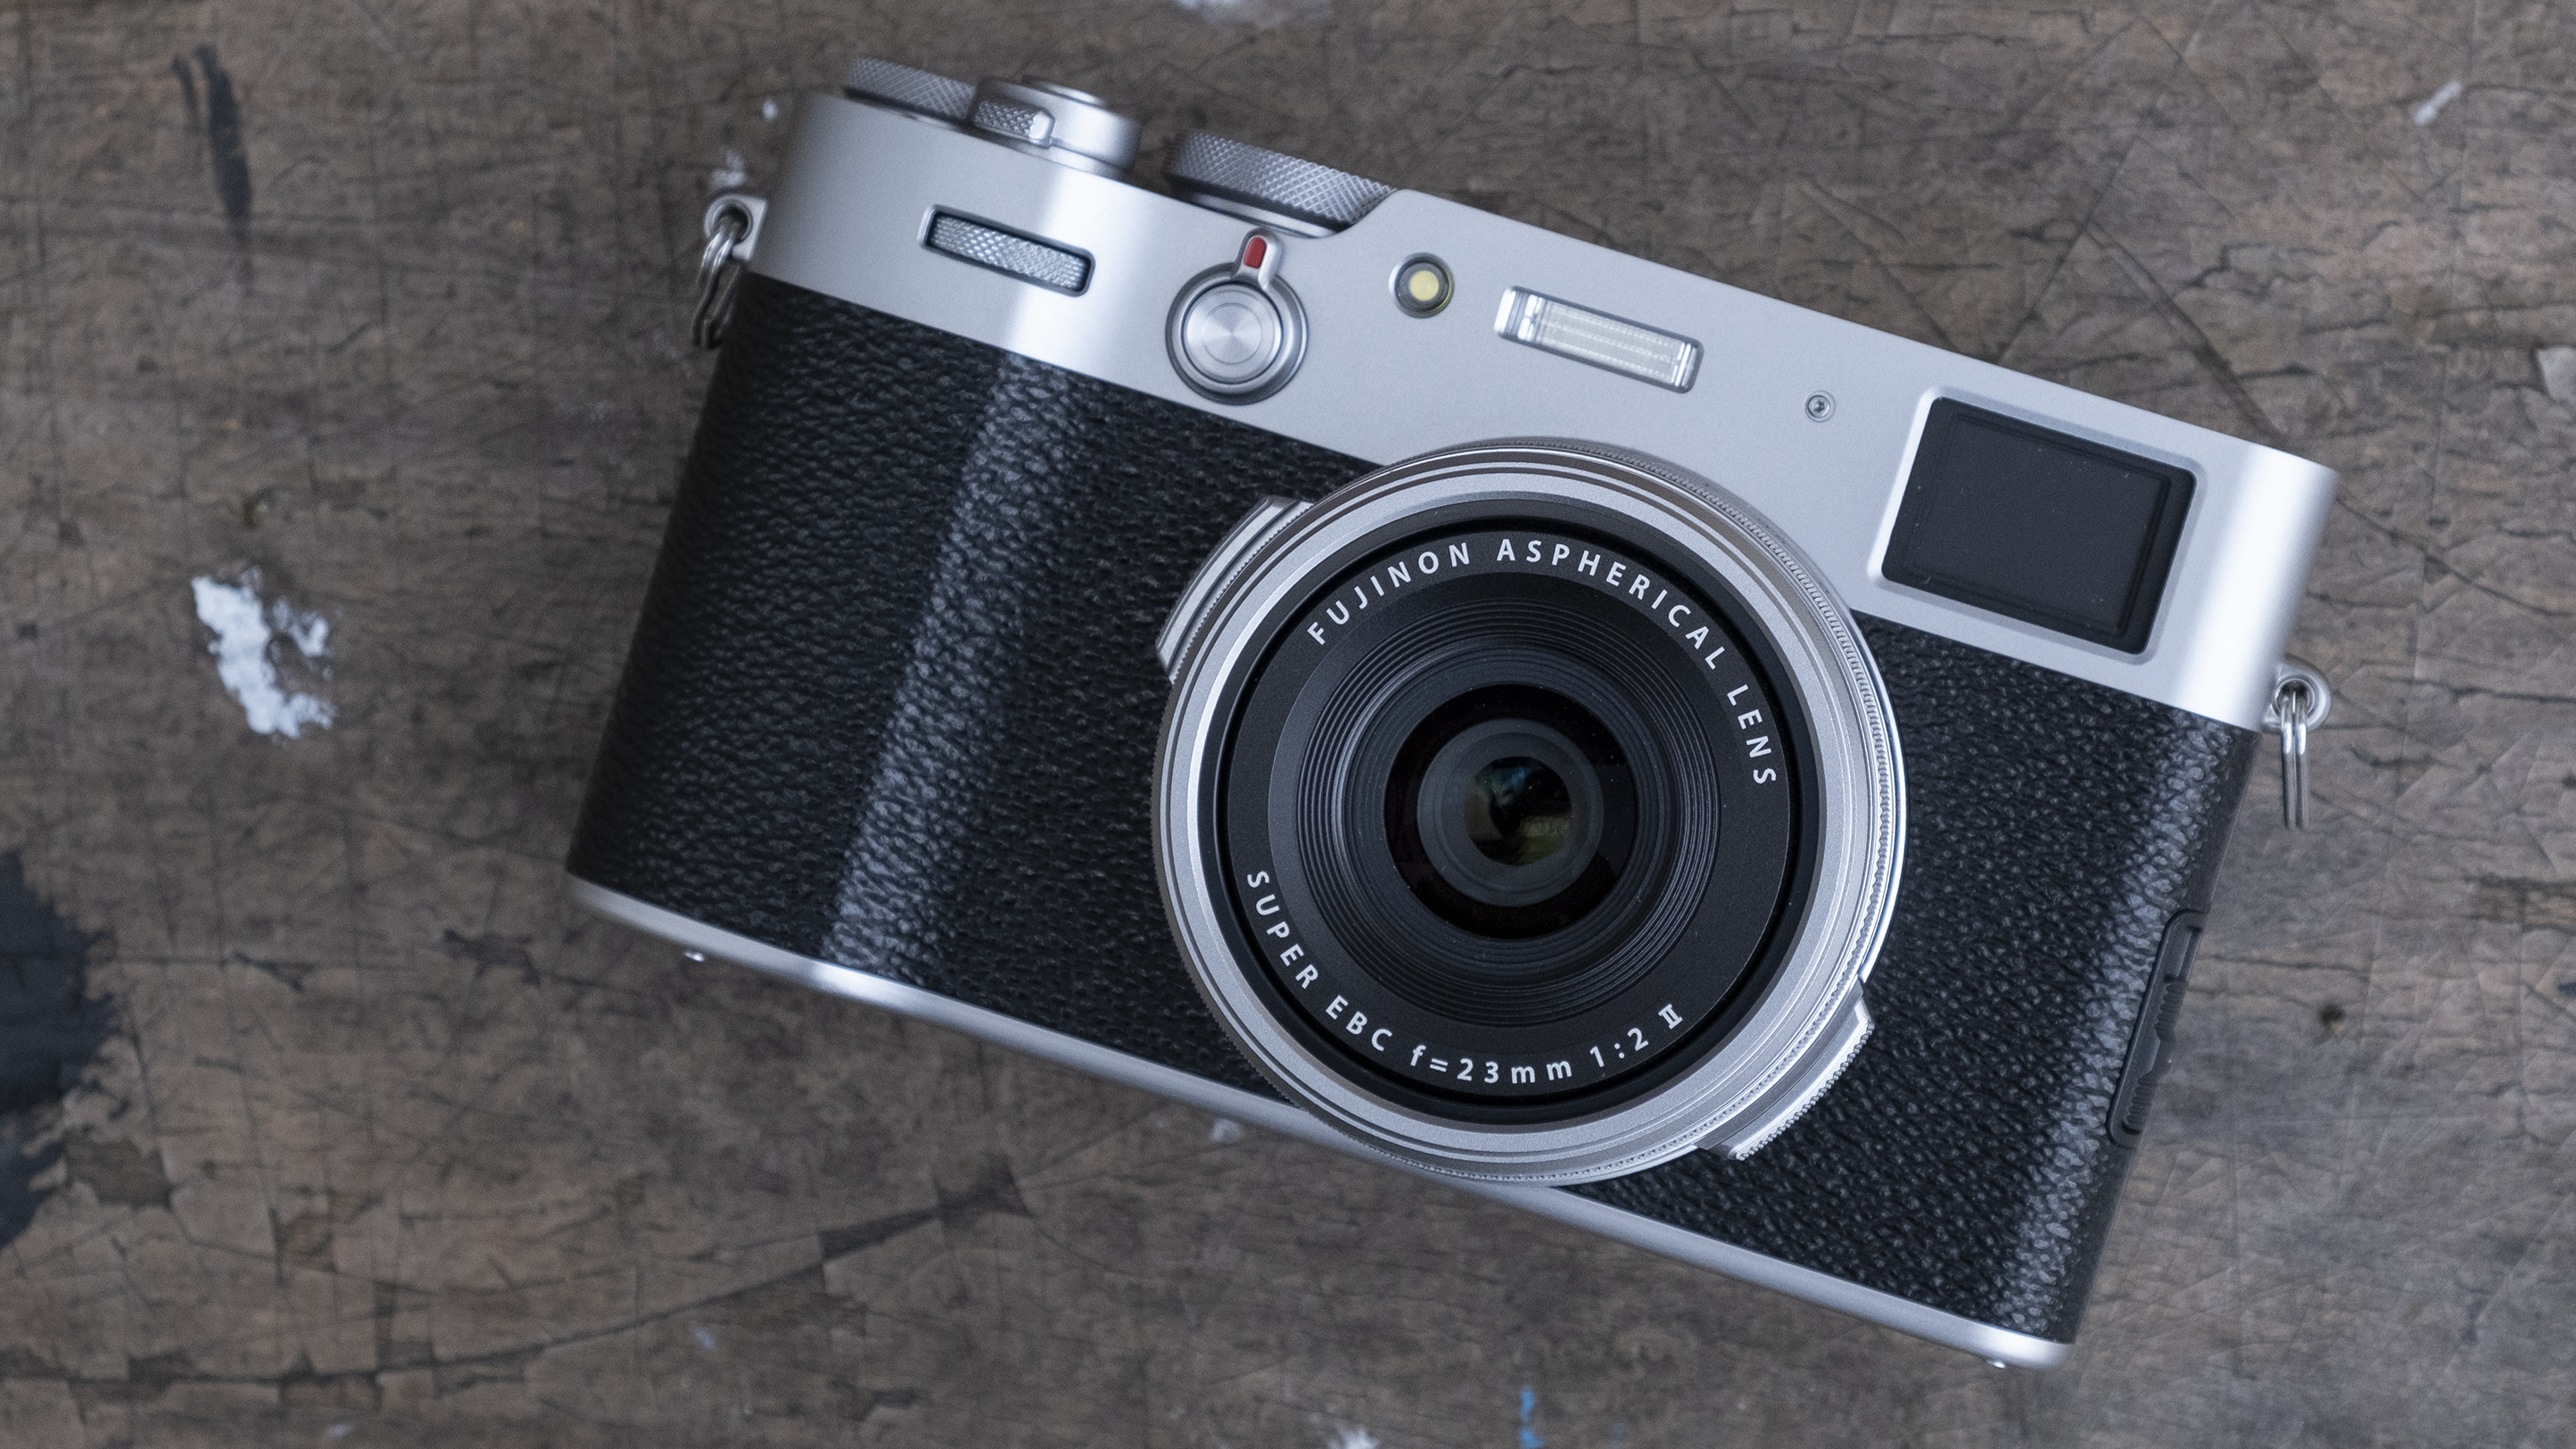 Best compact camera 2020: 10 top compacts for smartphone-beating snaps